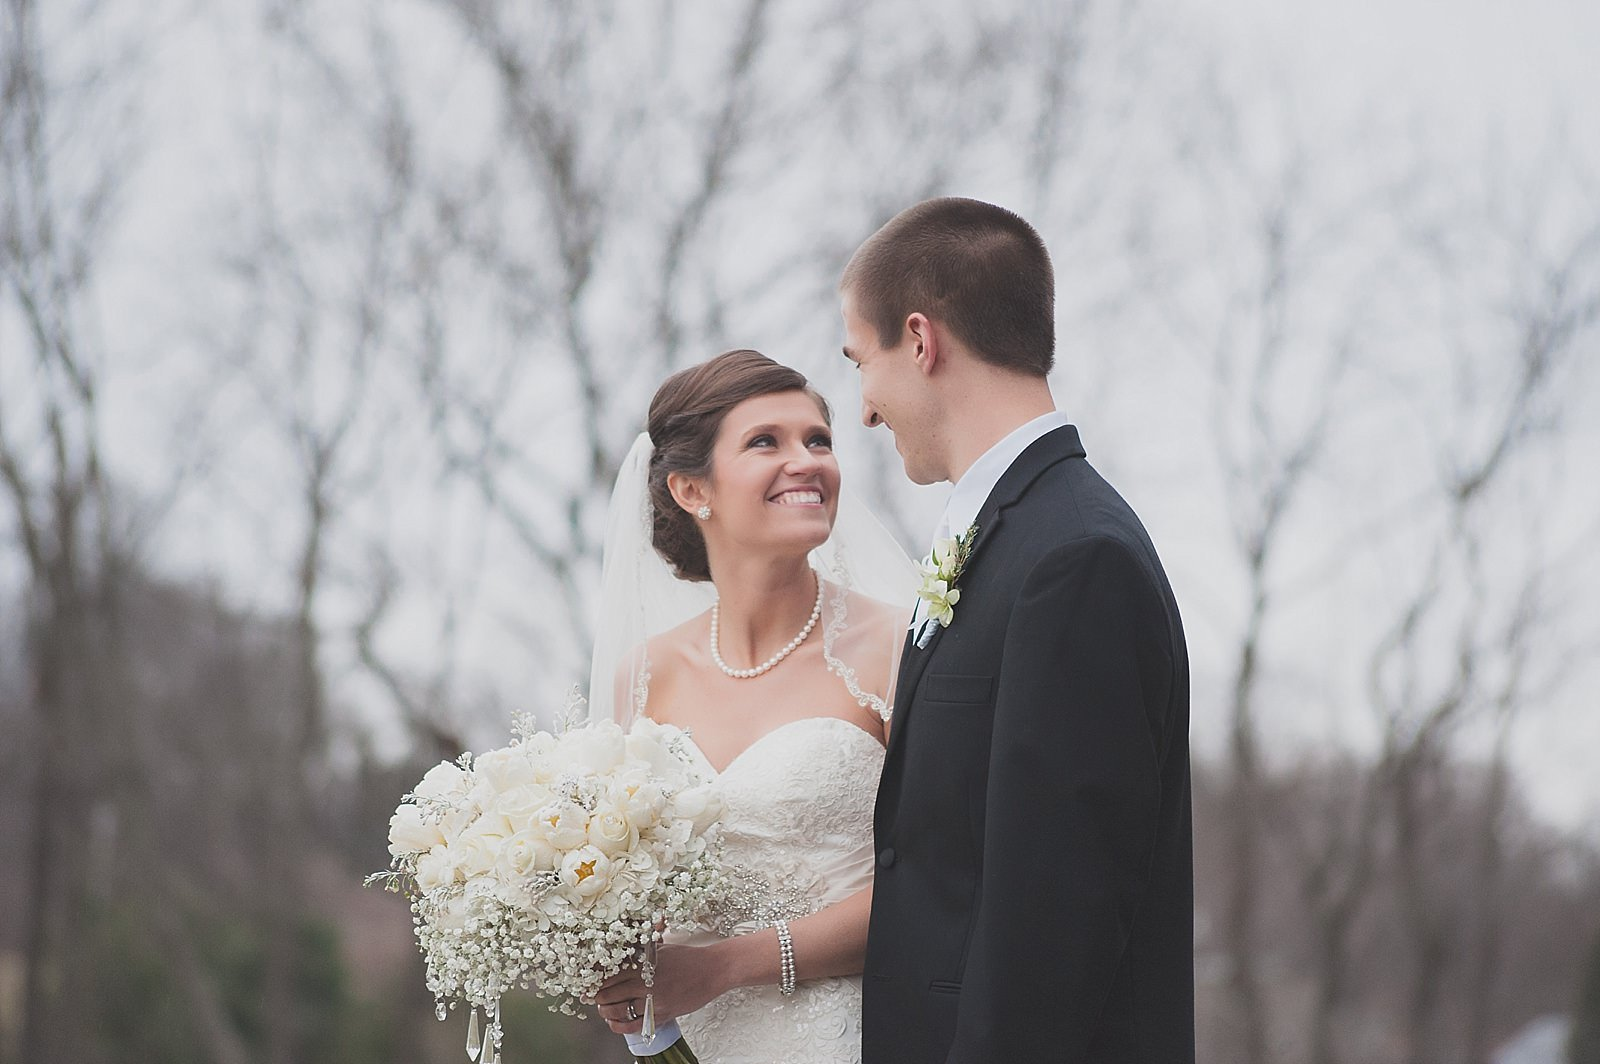 Somerset, KY Wedding : Andrew & Noelle at The Barn at Redgate